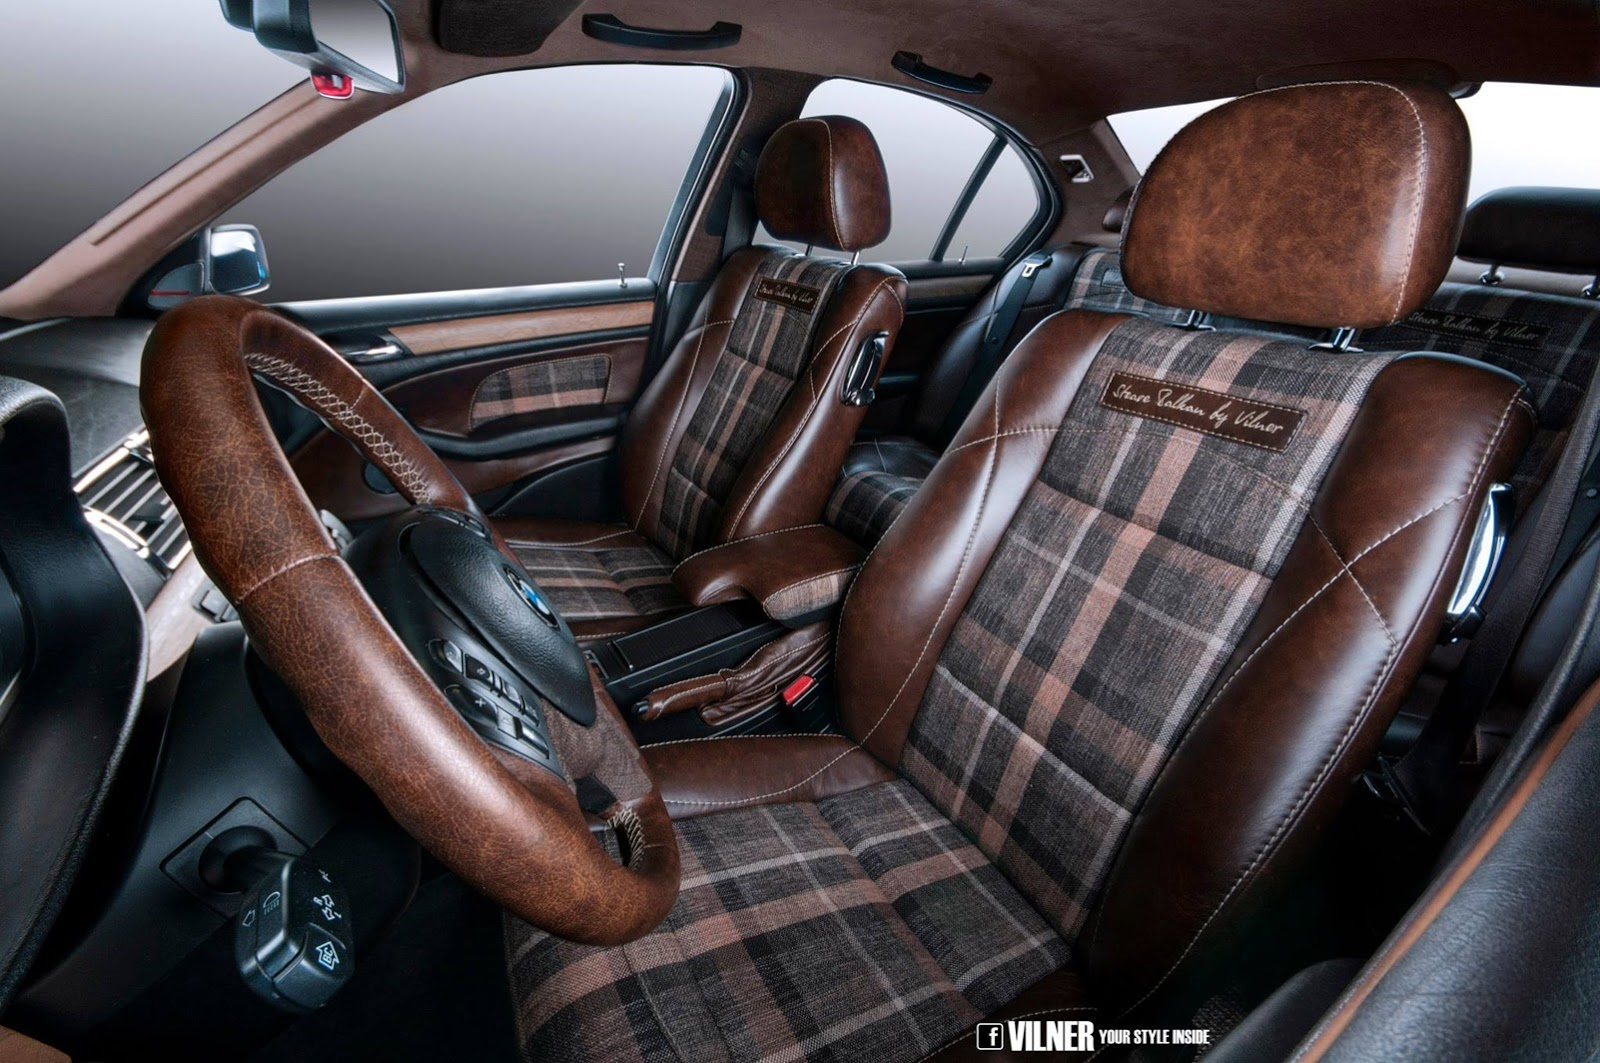 Bmw e46 3 series gets hipster interior from vilner for Interieur tuning auto